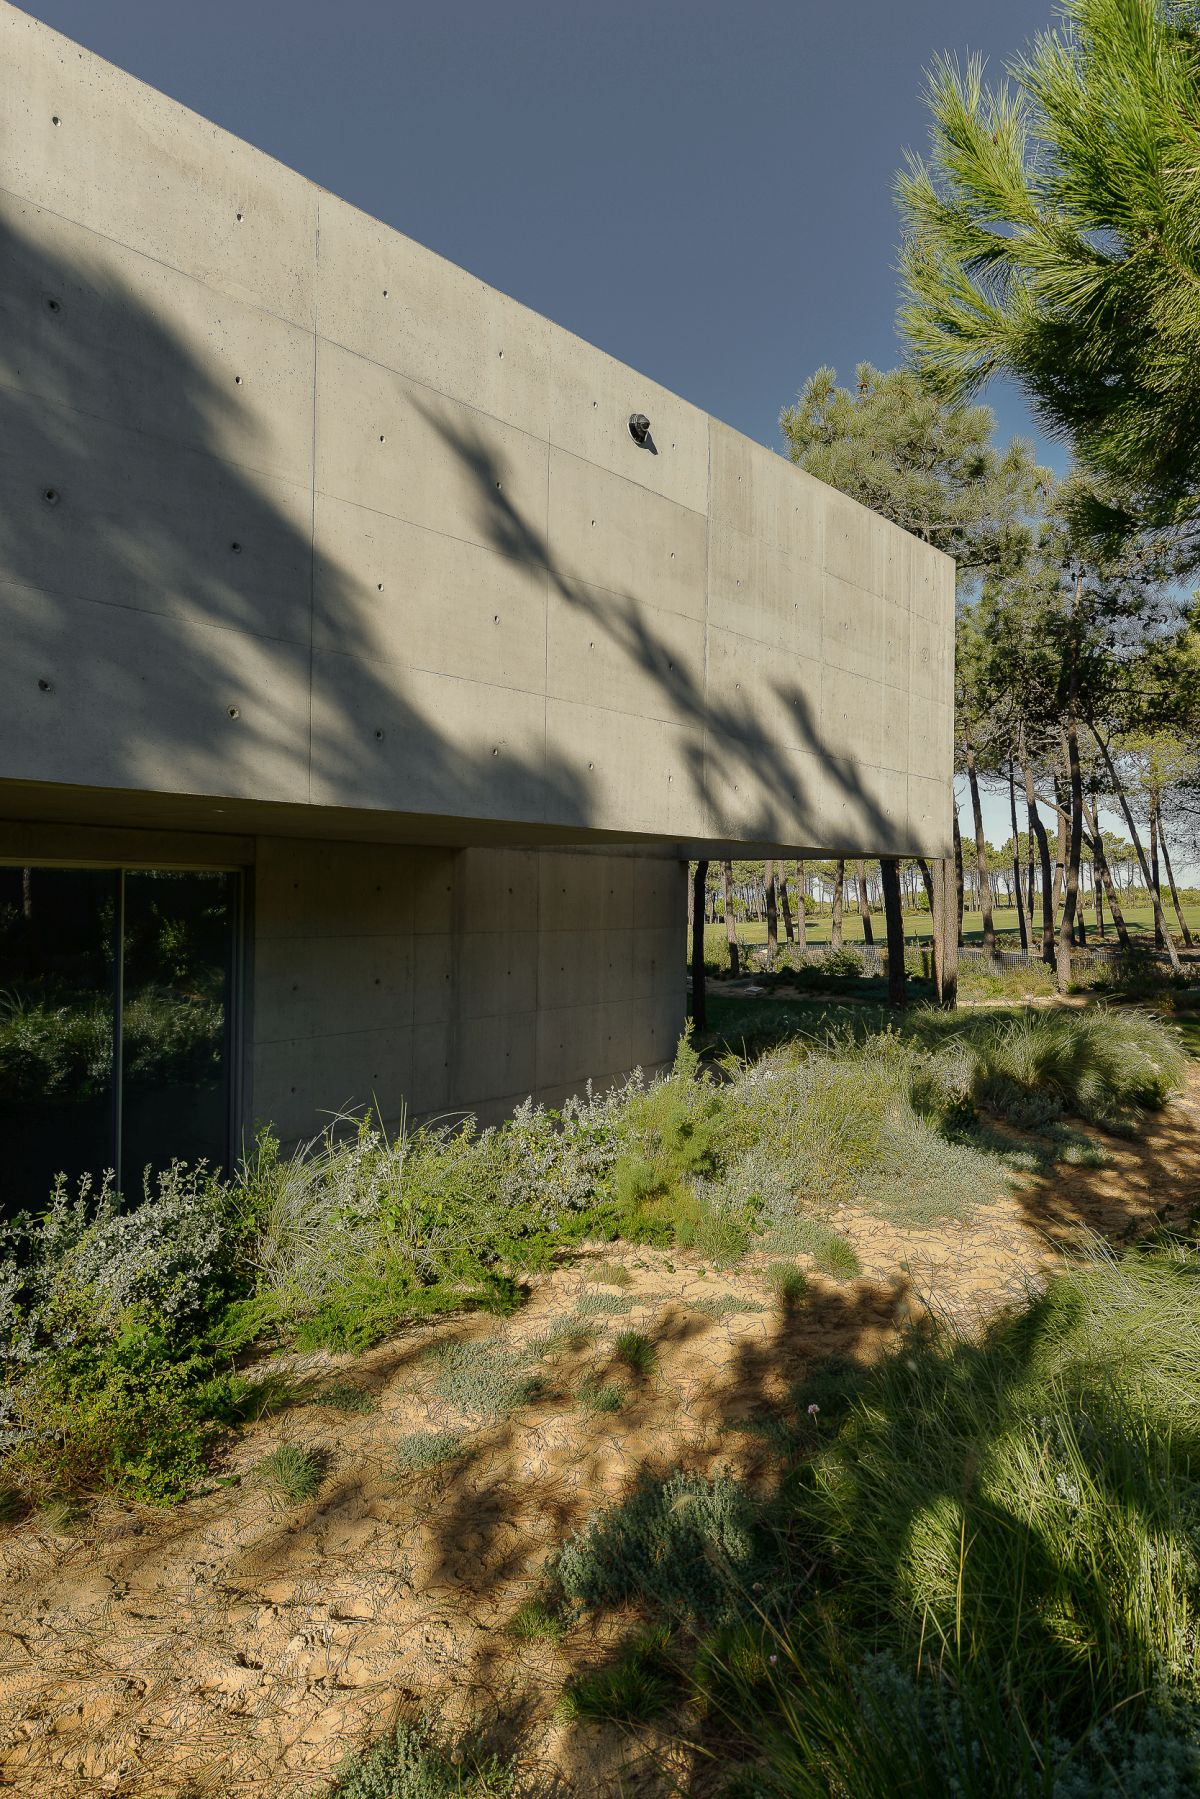 The natural landscape plays a role in the design.